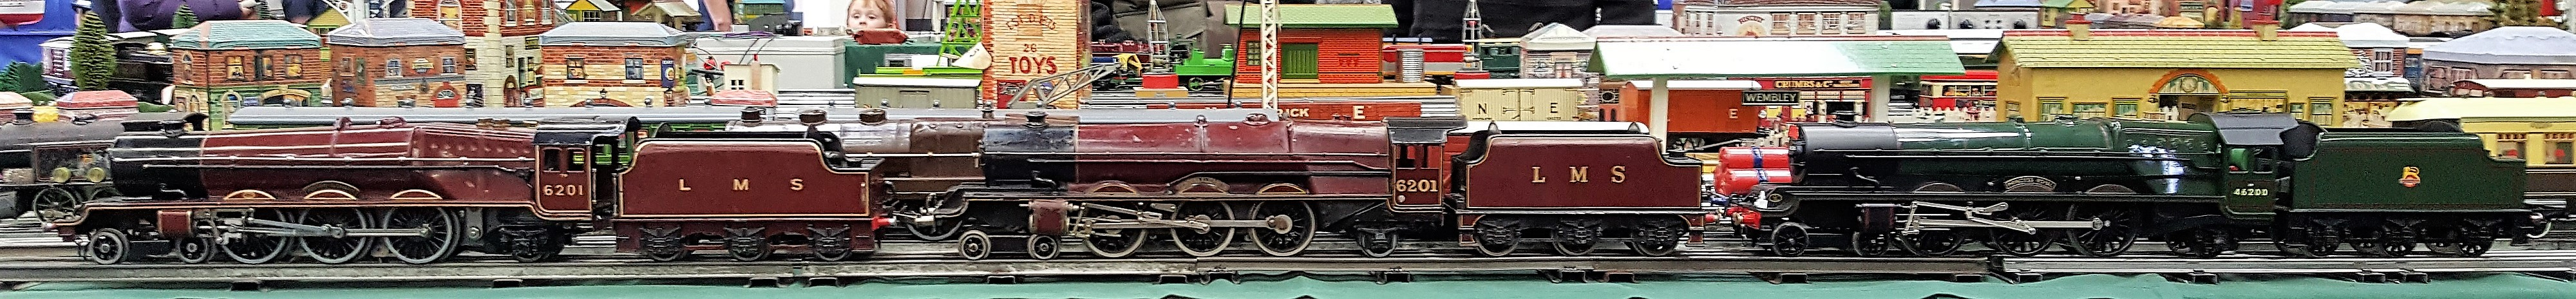 Hornby B-L and Corgi Princesses